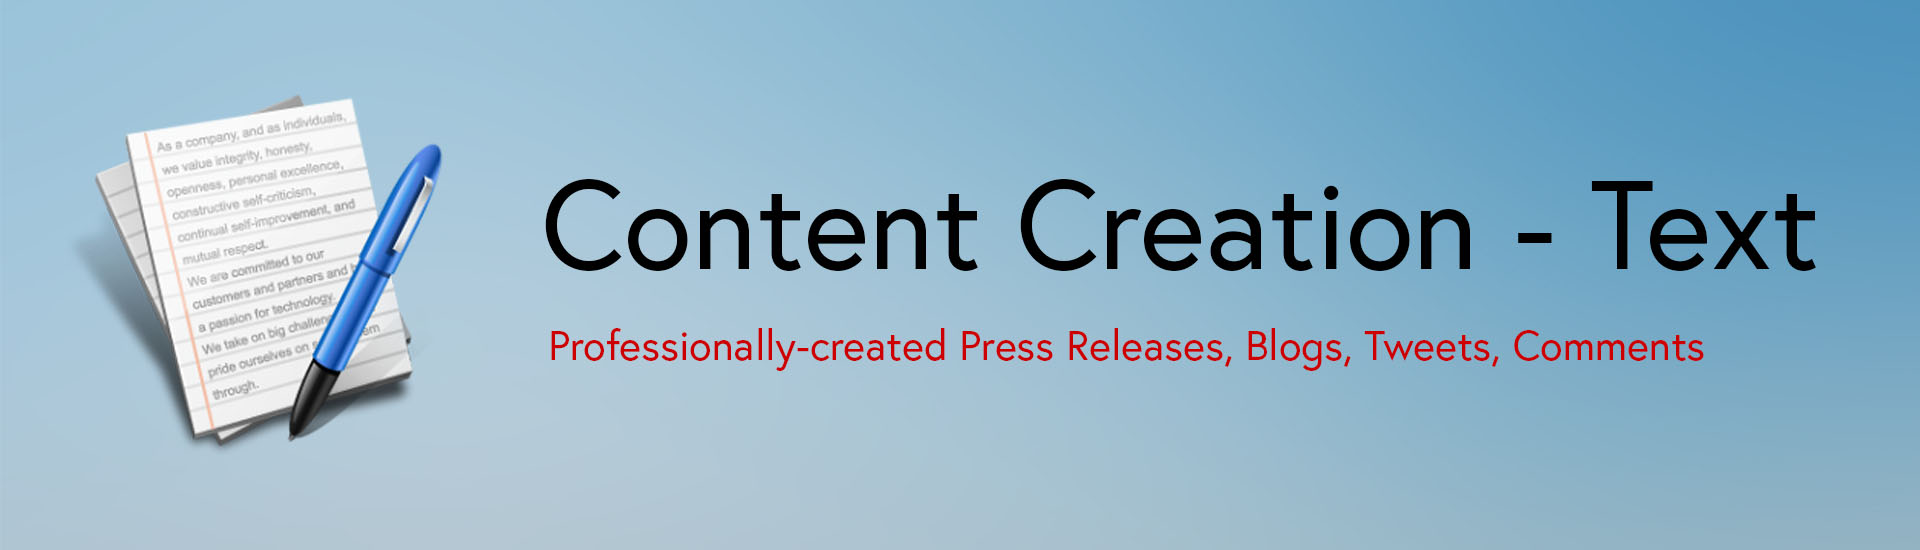 Content Creation - Text